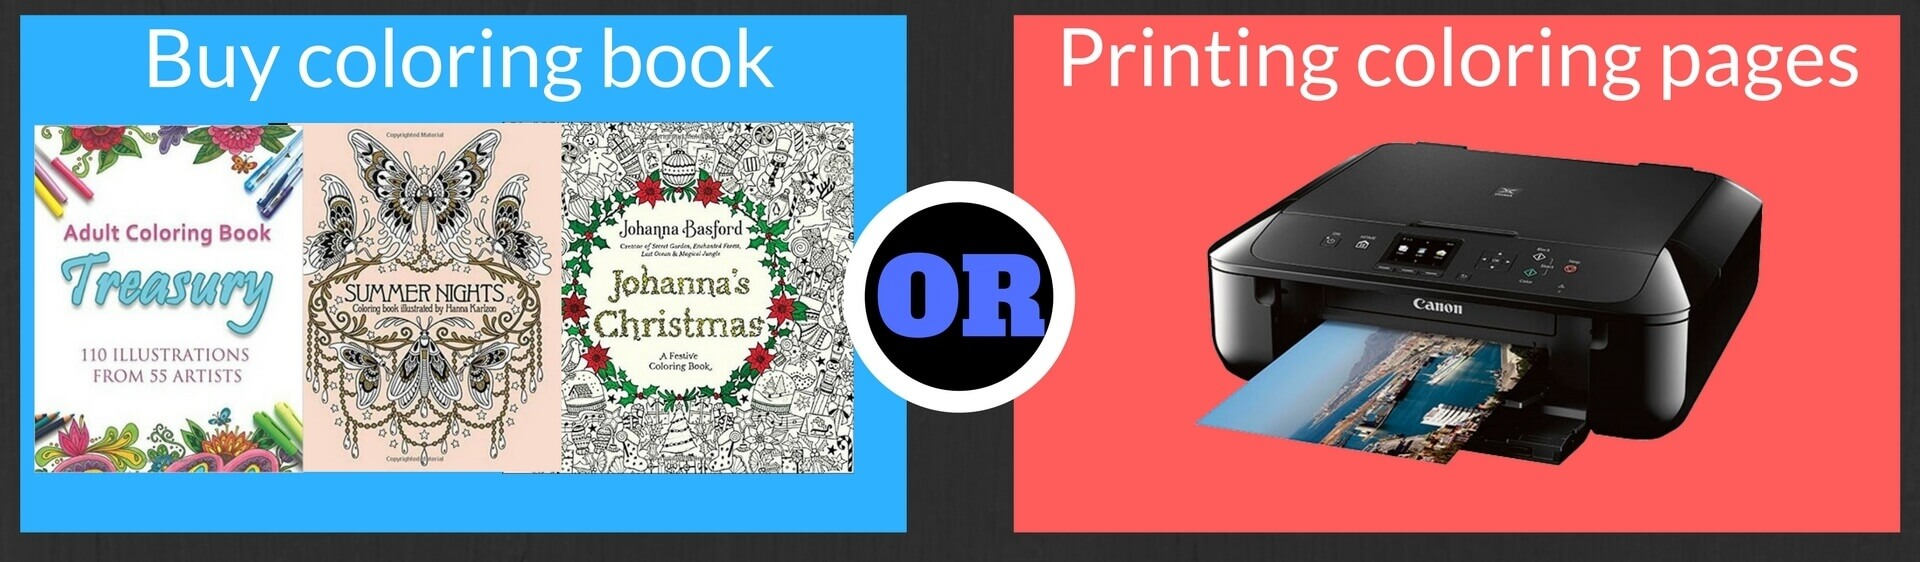 Is It Better To Buy Books Or Coloring Pages Colorplaner